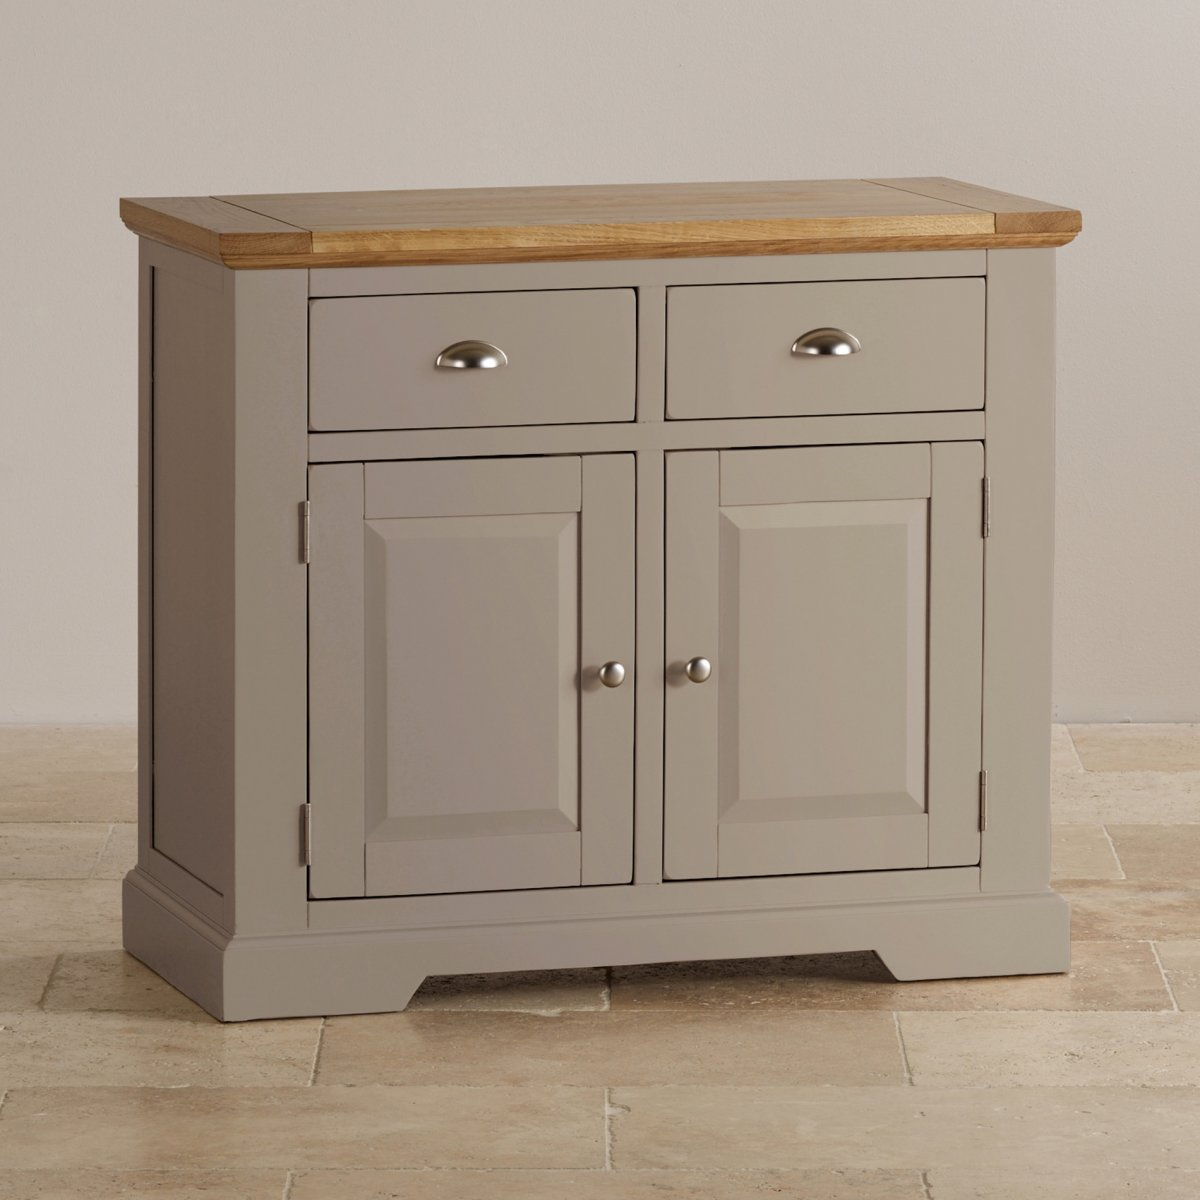 Country Dining Room Pictures Natural Oak And Light Grey Painted Small Sideboard